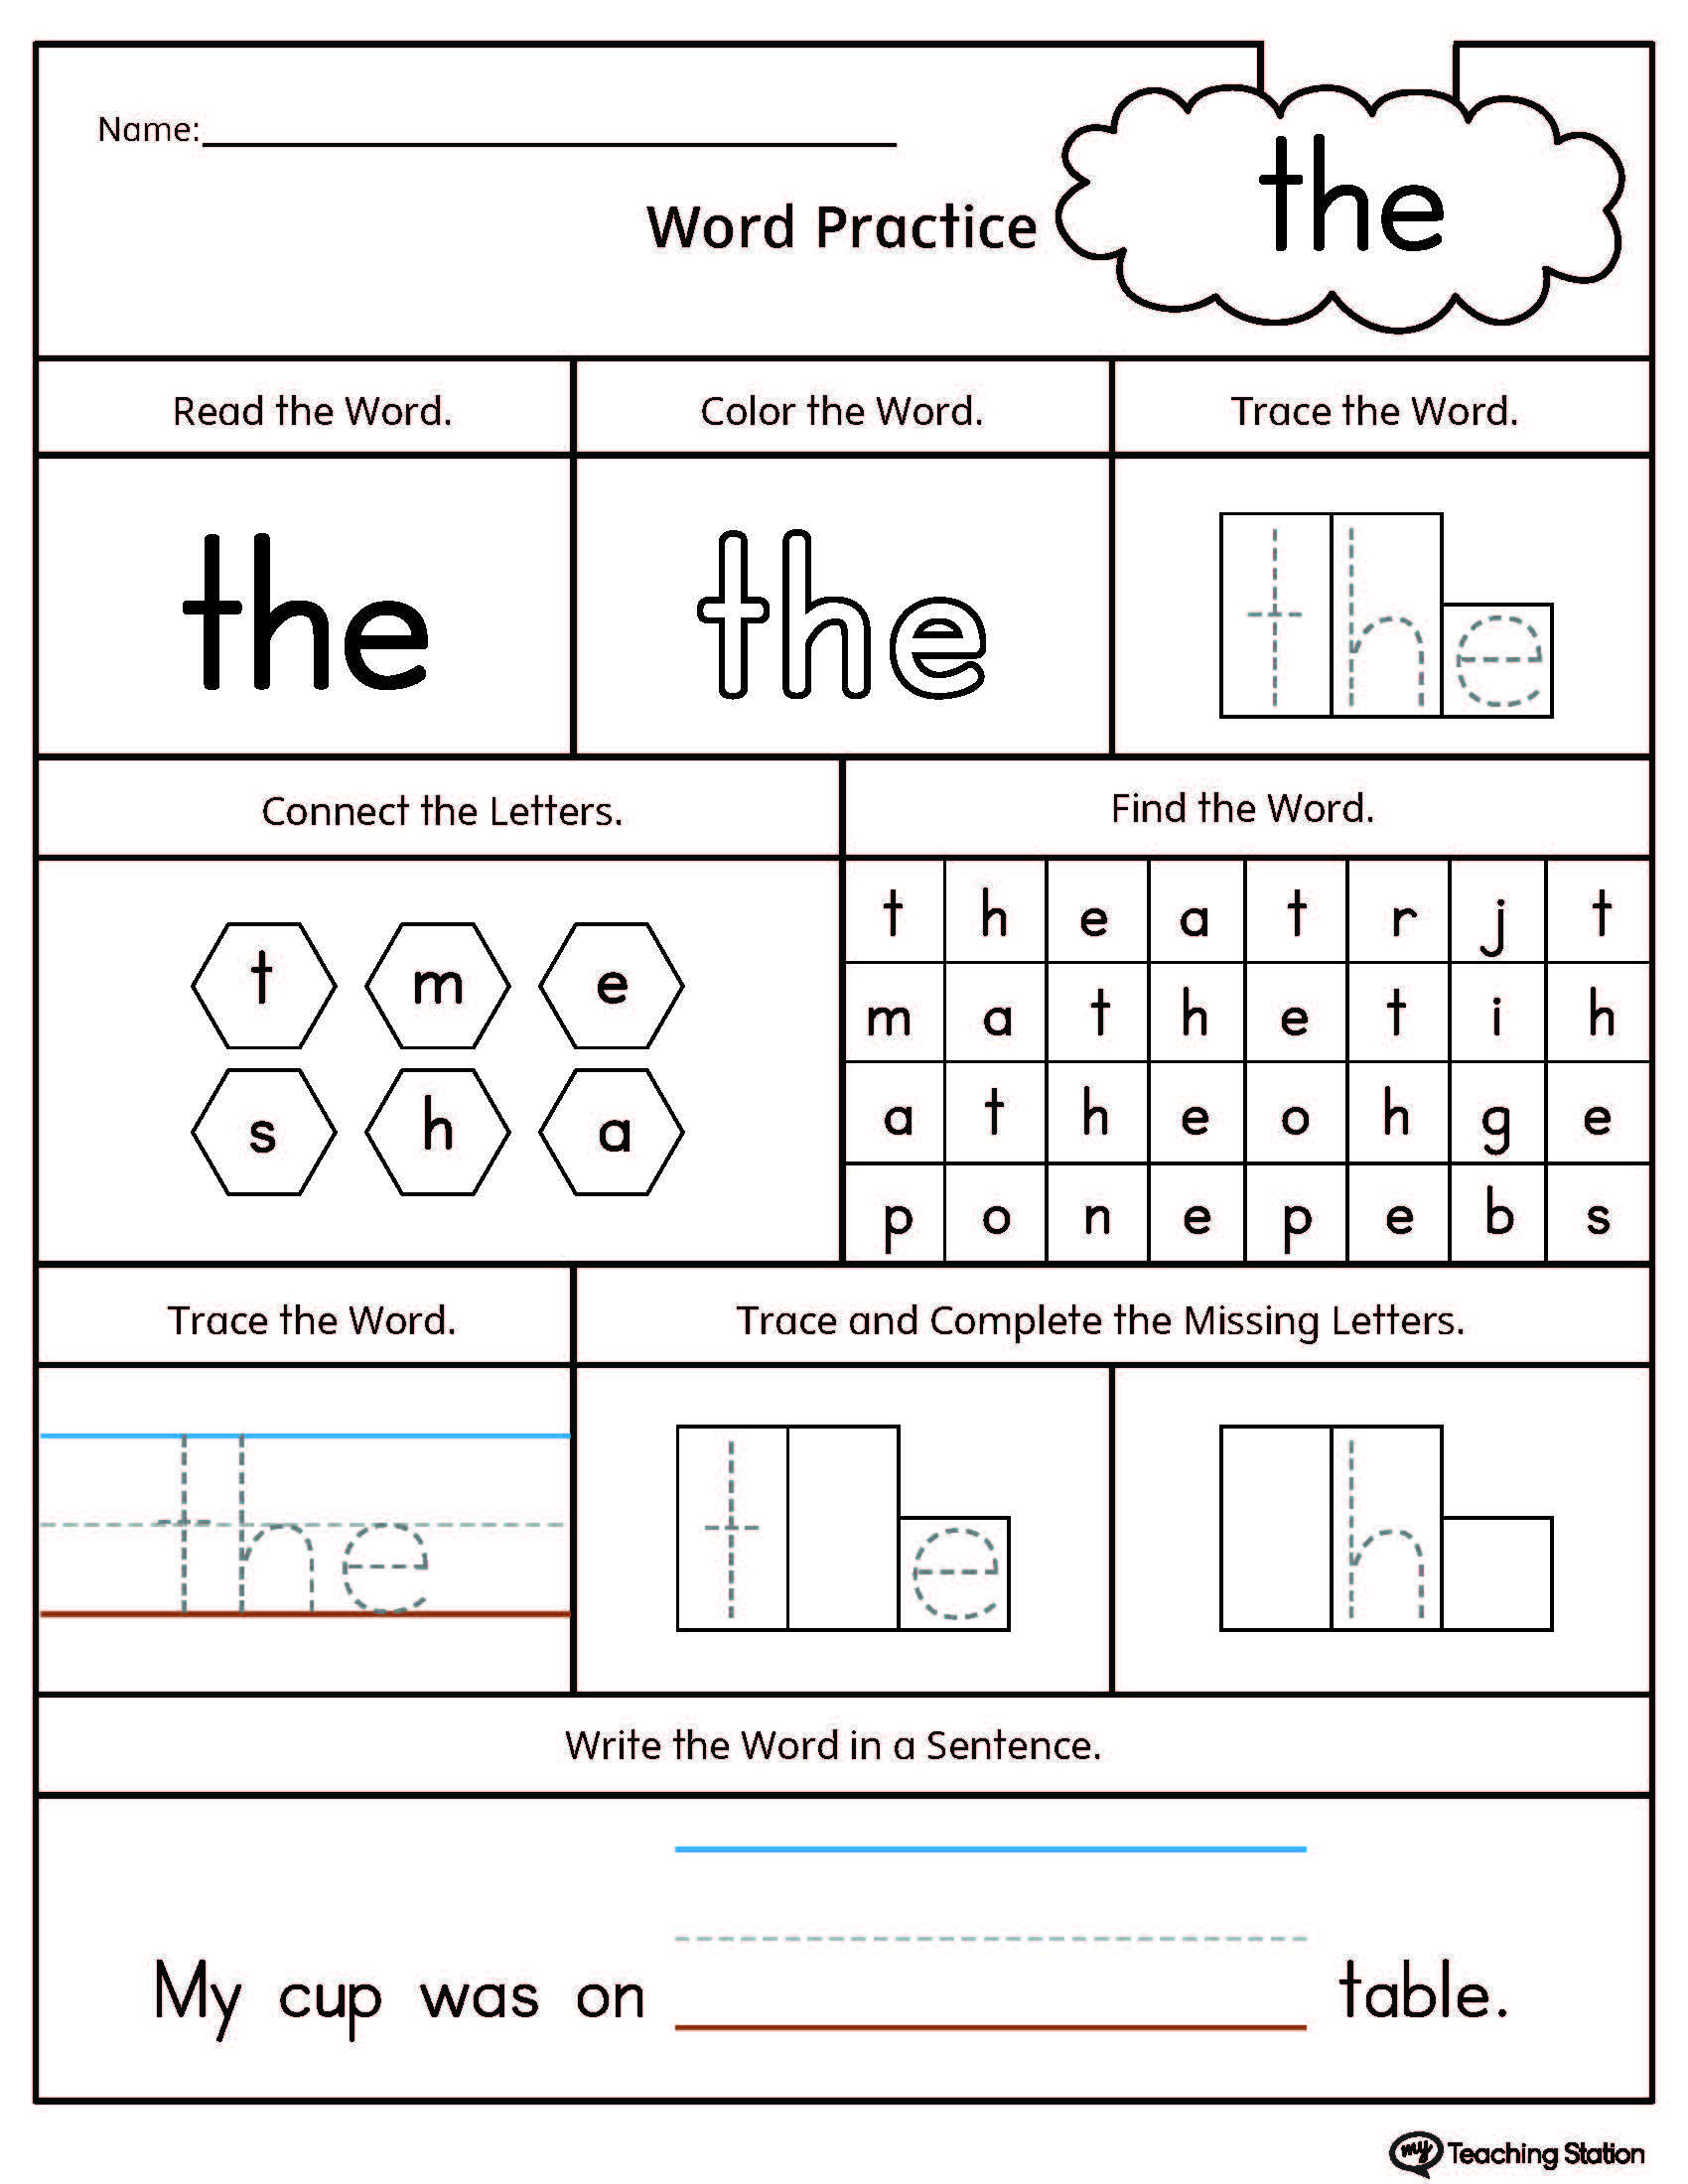 Sight Word the Printable Worksheet – Tracing Sight Words Worksheets Kindergarten